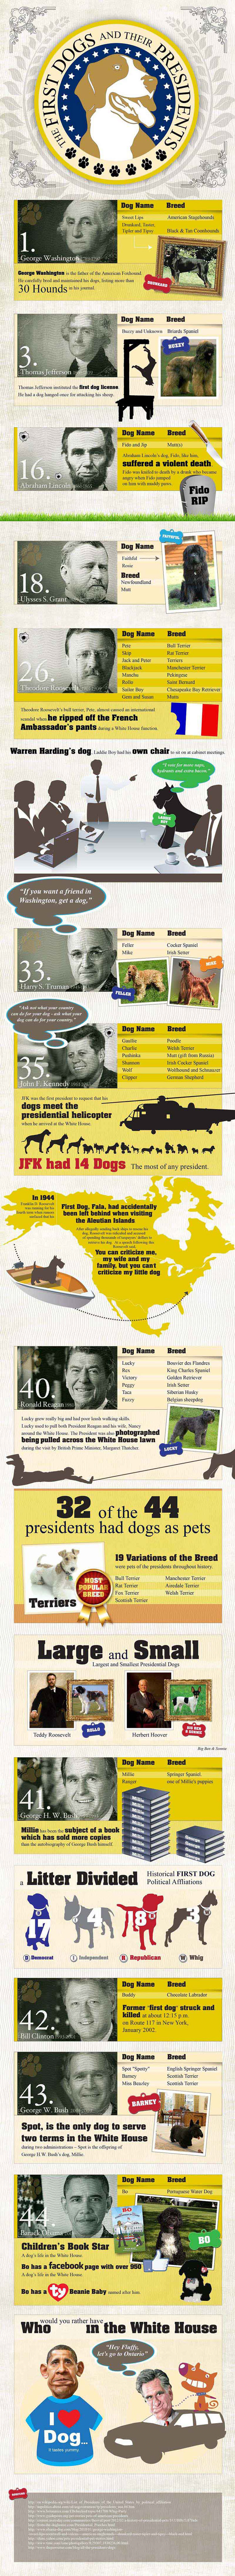 first dogs, and their president owners, infographic